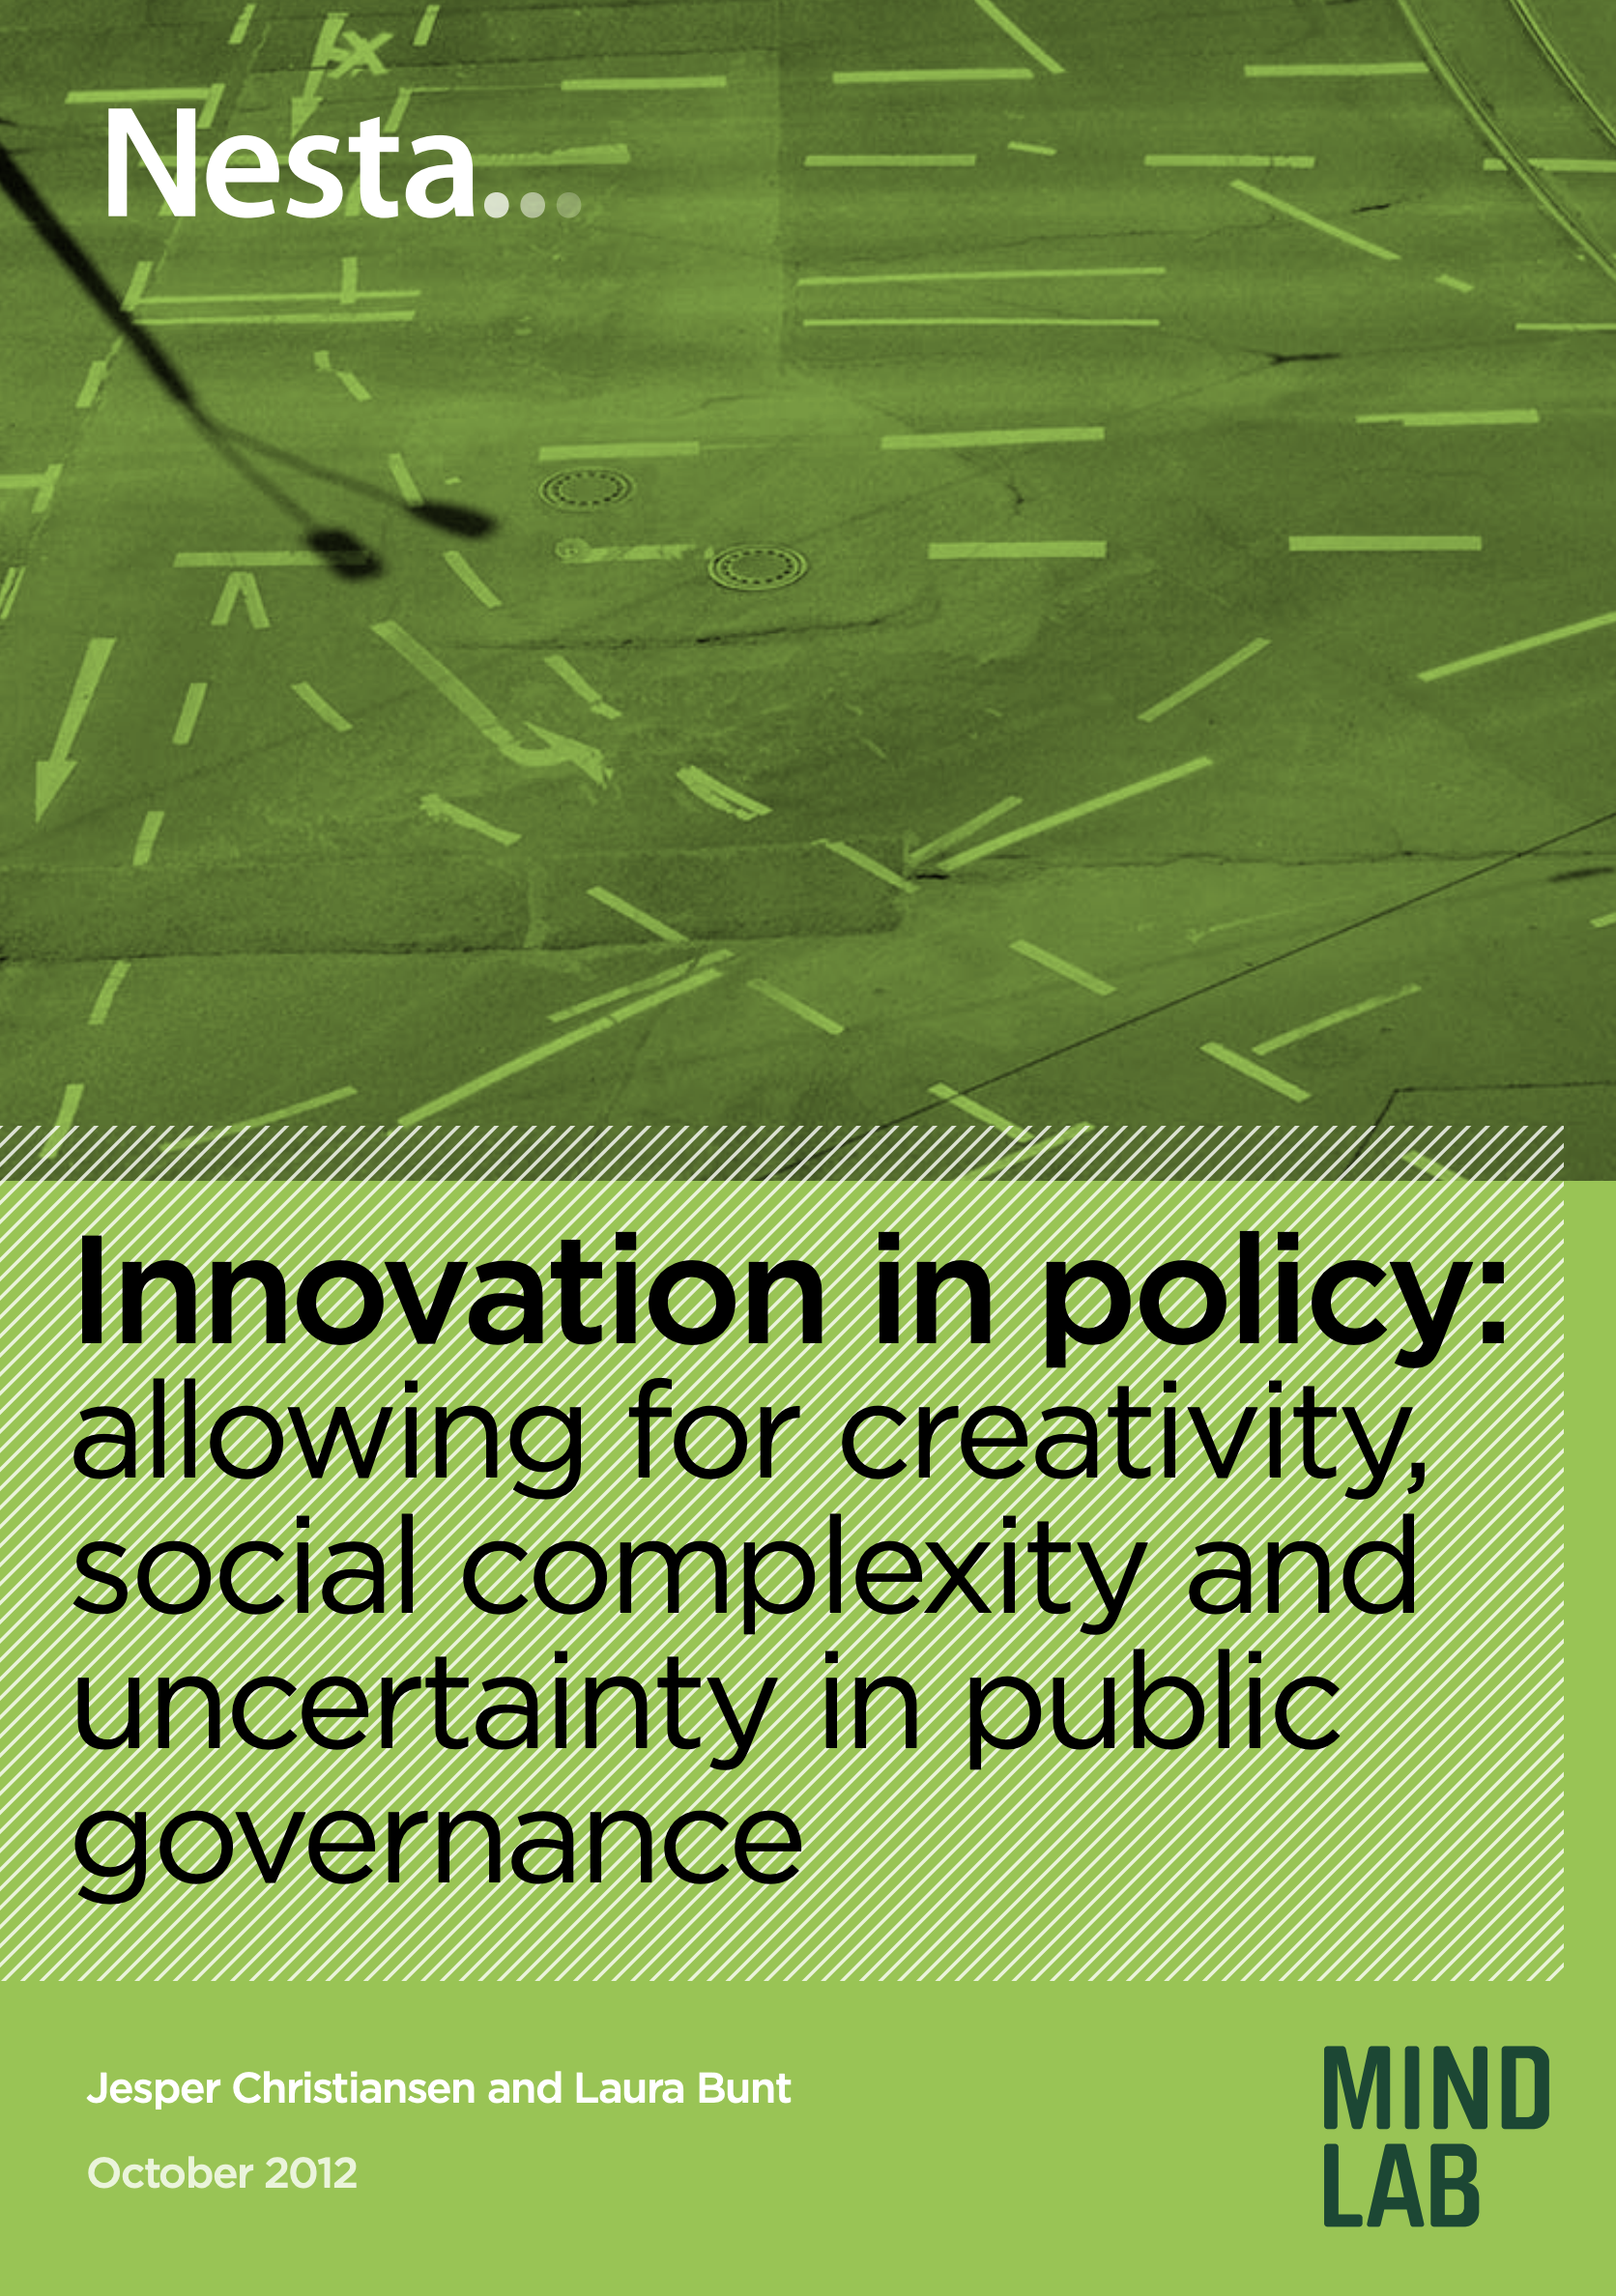 「Innovation in policy: allowing for creativity, social complexity and uncertainty in public governance, Nesta」